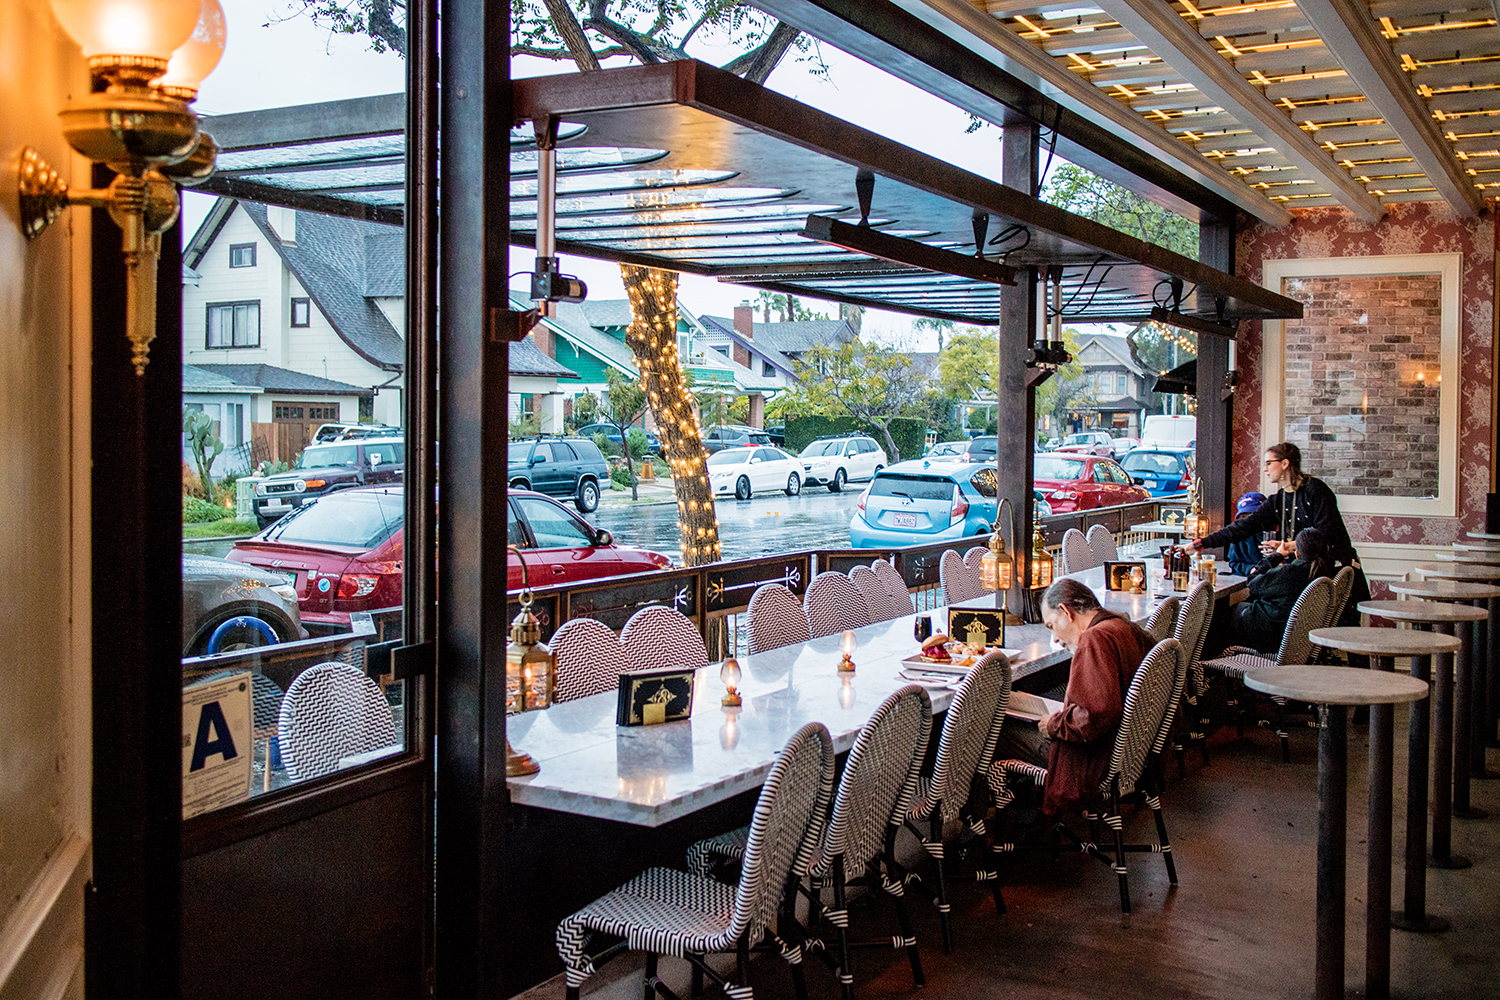 THE WINDOWS OPEN WITH AN INDOOR OUTDOOR SEATING AREA.